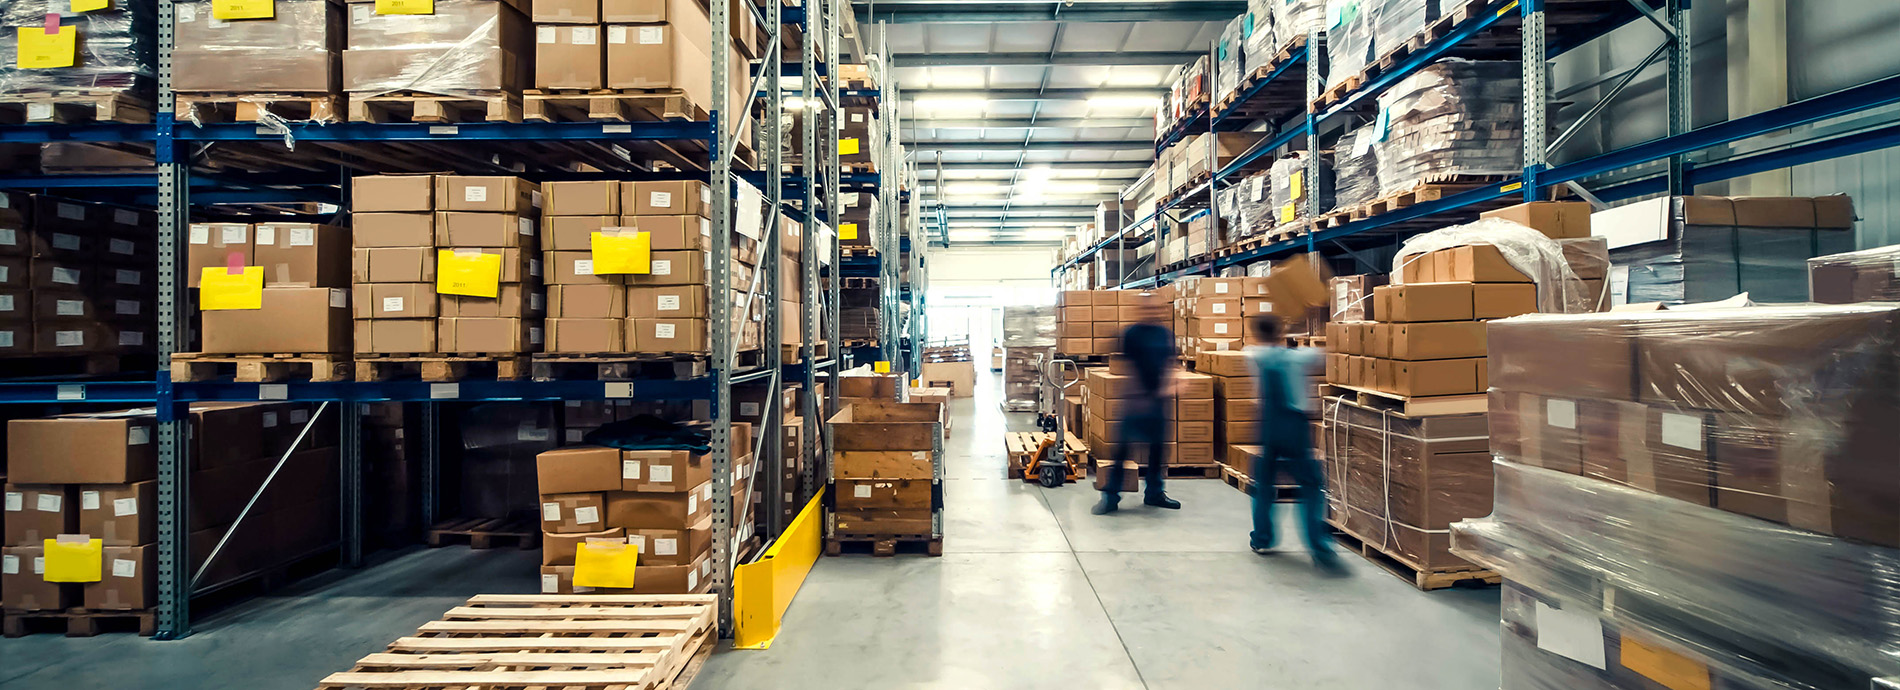 Logistics warehouse with parcels